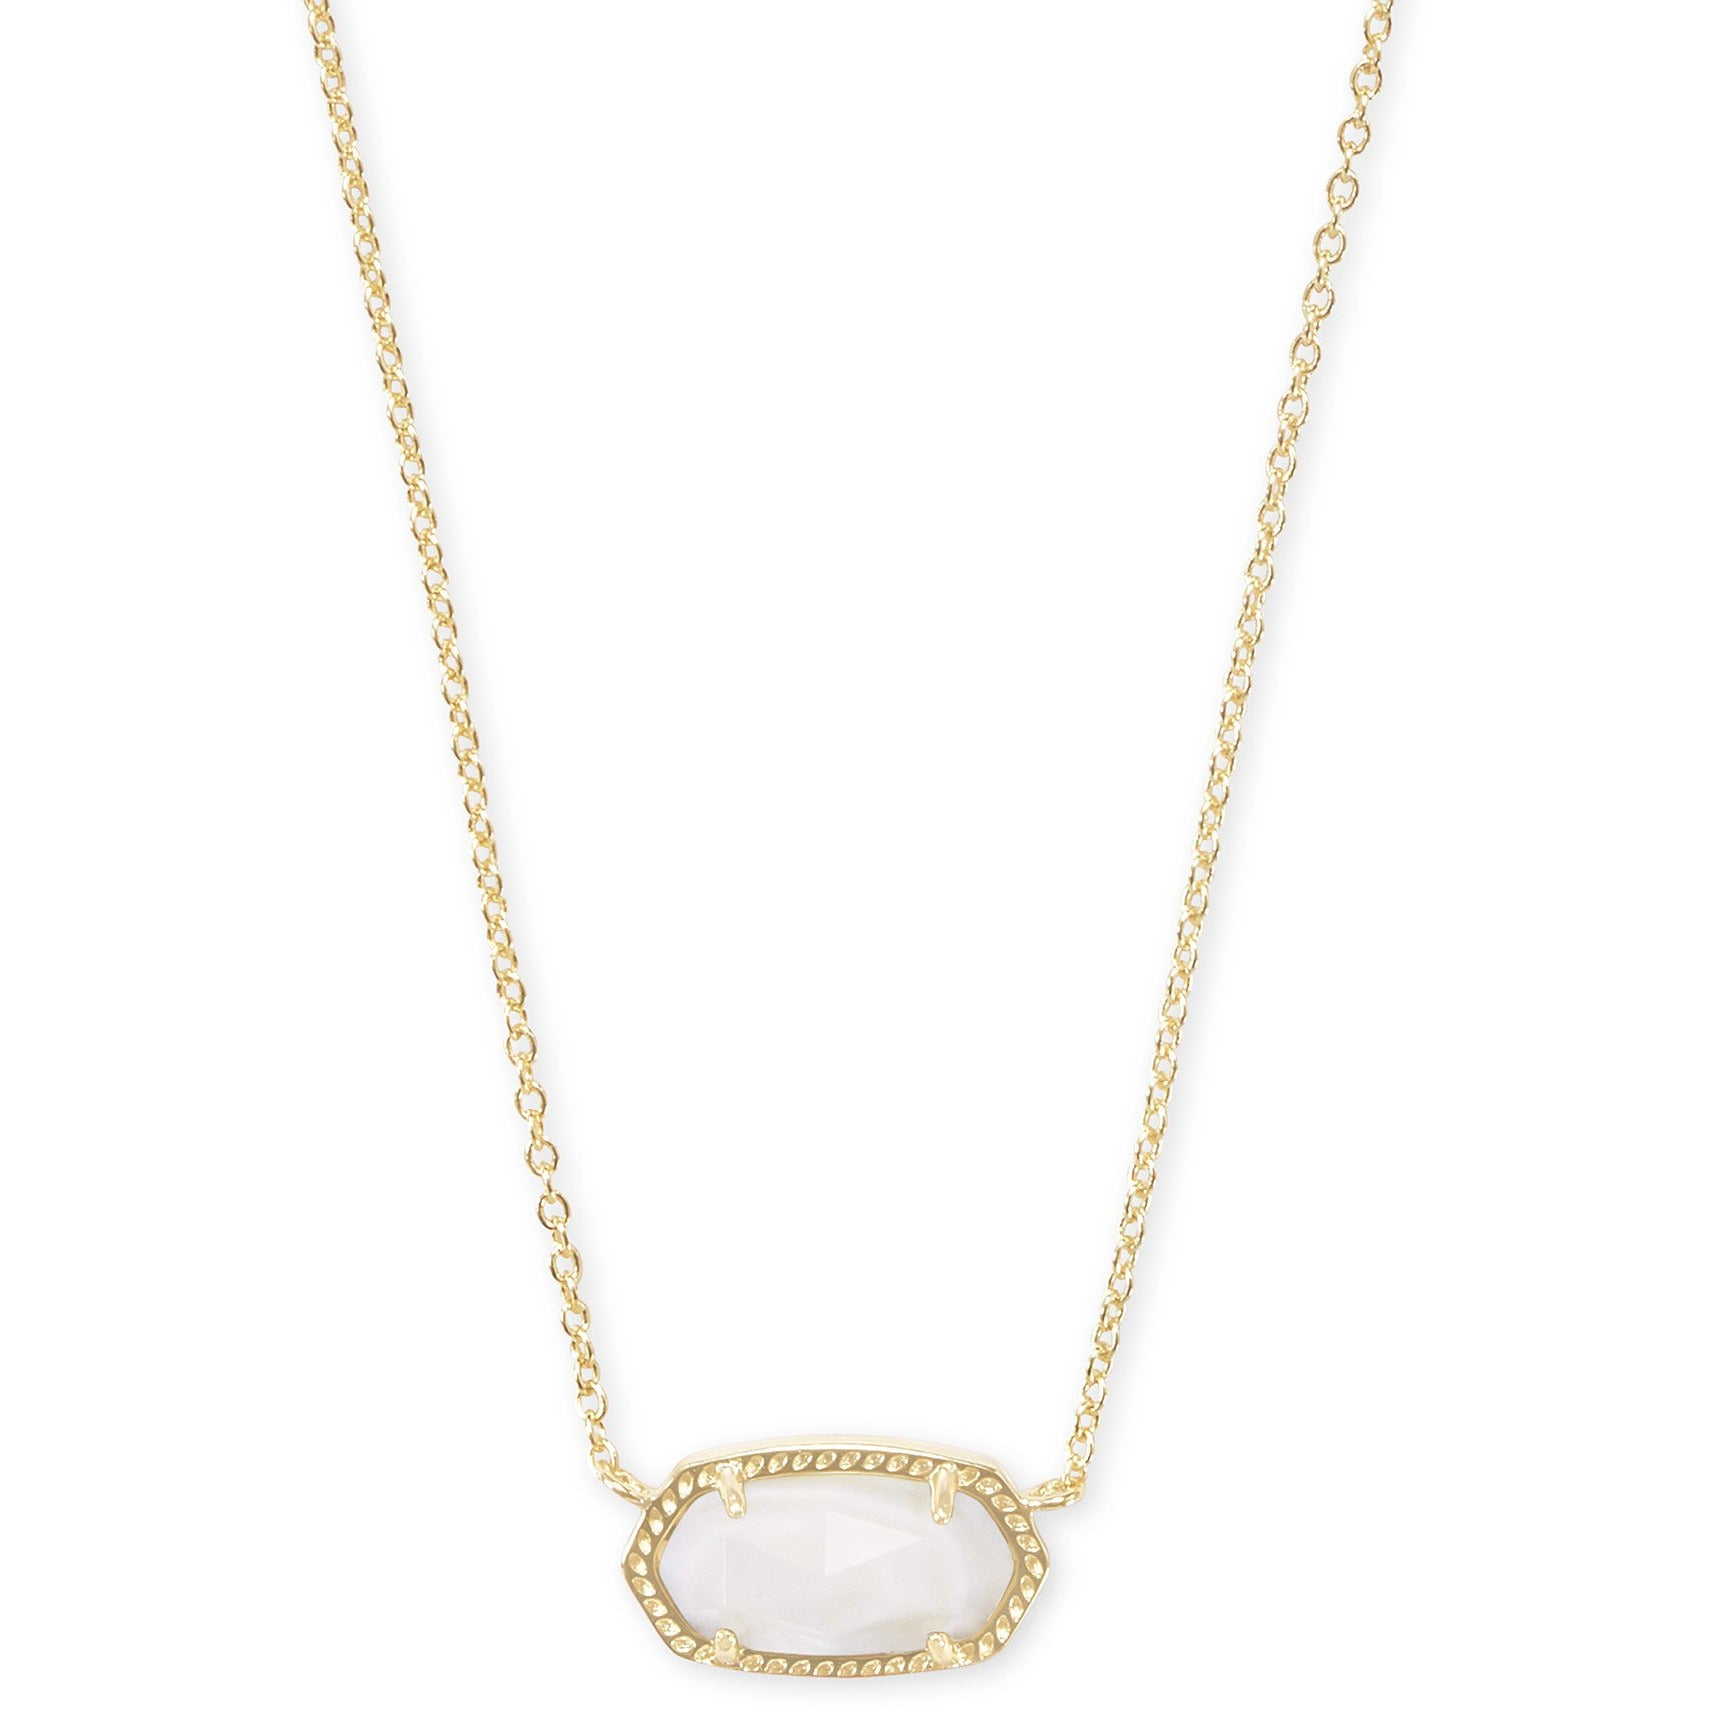 Kendra Scott - Elisa Gold Pendant Necklace in White Mother-of-Pearl, Front View